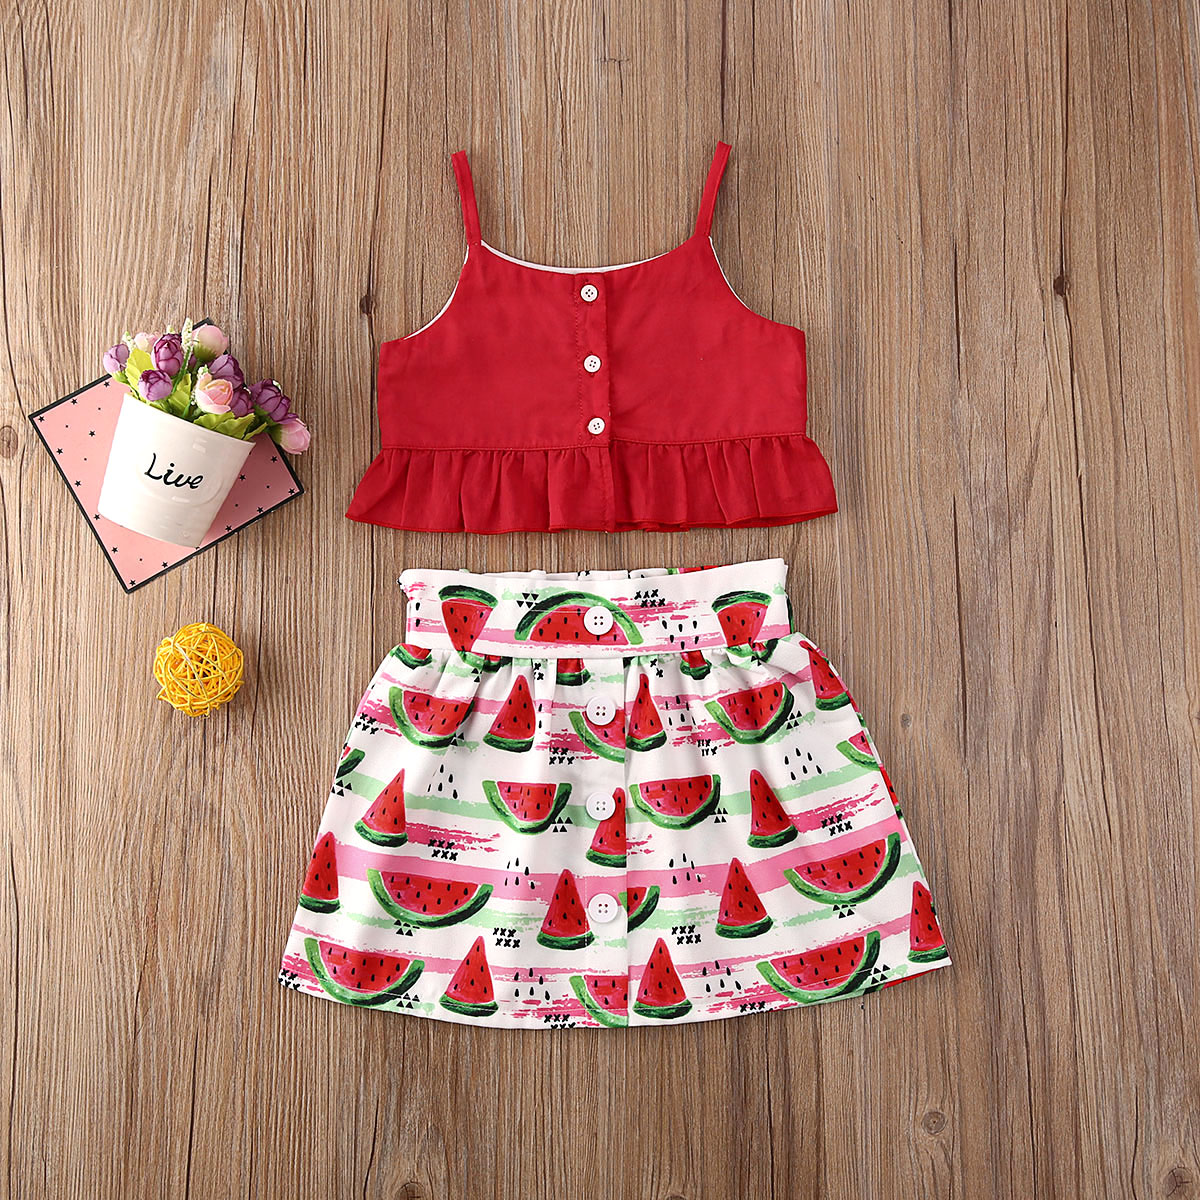 Pudcoco Toddler Baby Girl Clothes Solid Color Sleeveless Button Crop Tops Watermelon Print Mini Skirt 2Pcs Outfits Clothes